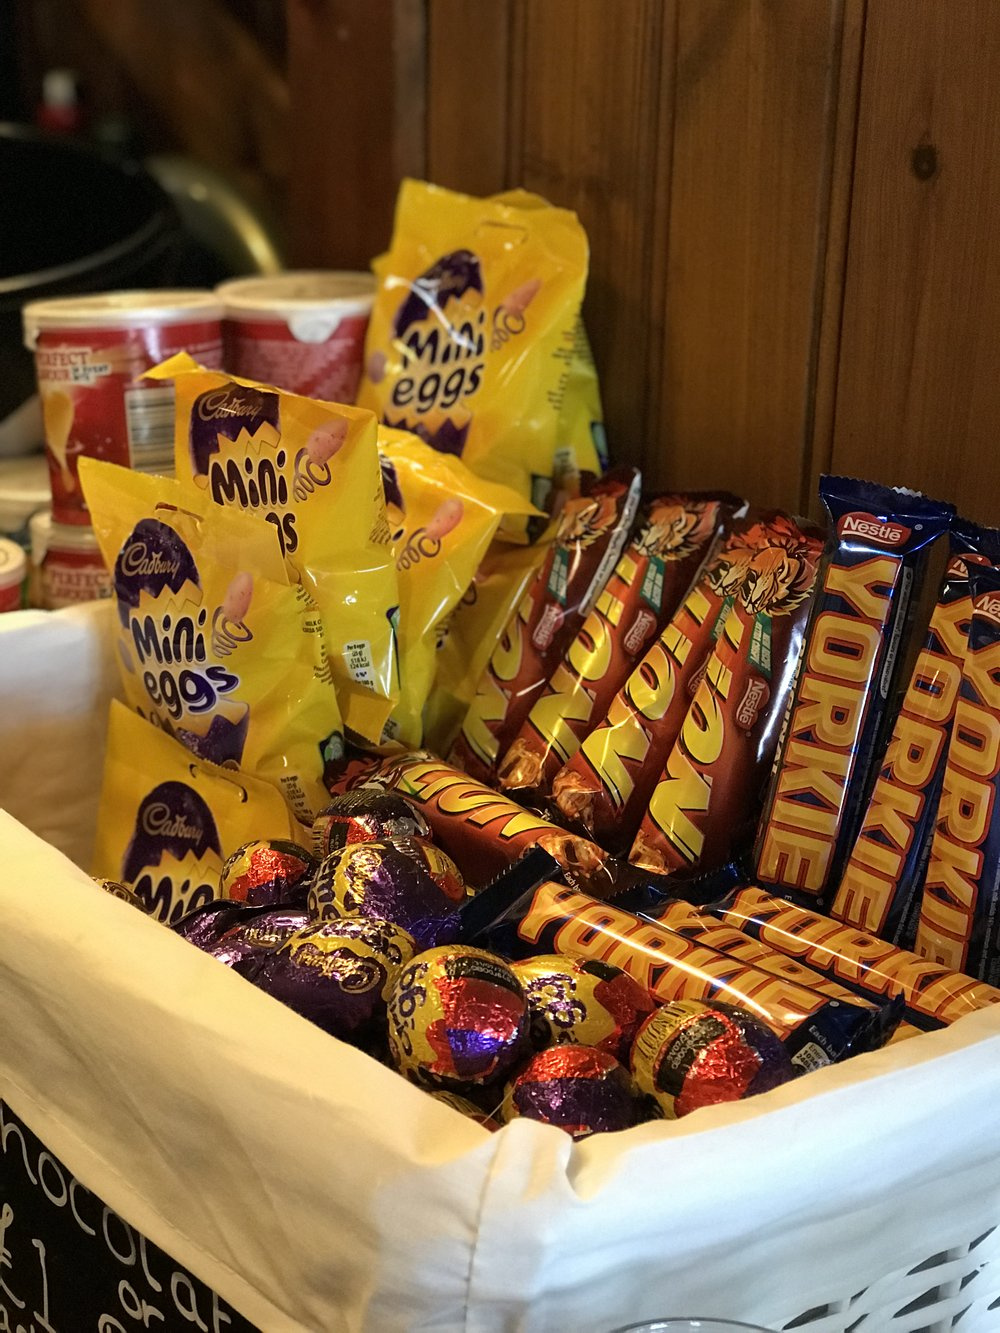 Feeling peckish?  We stock a selection of crisps, nuts & chocolate